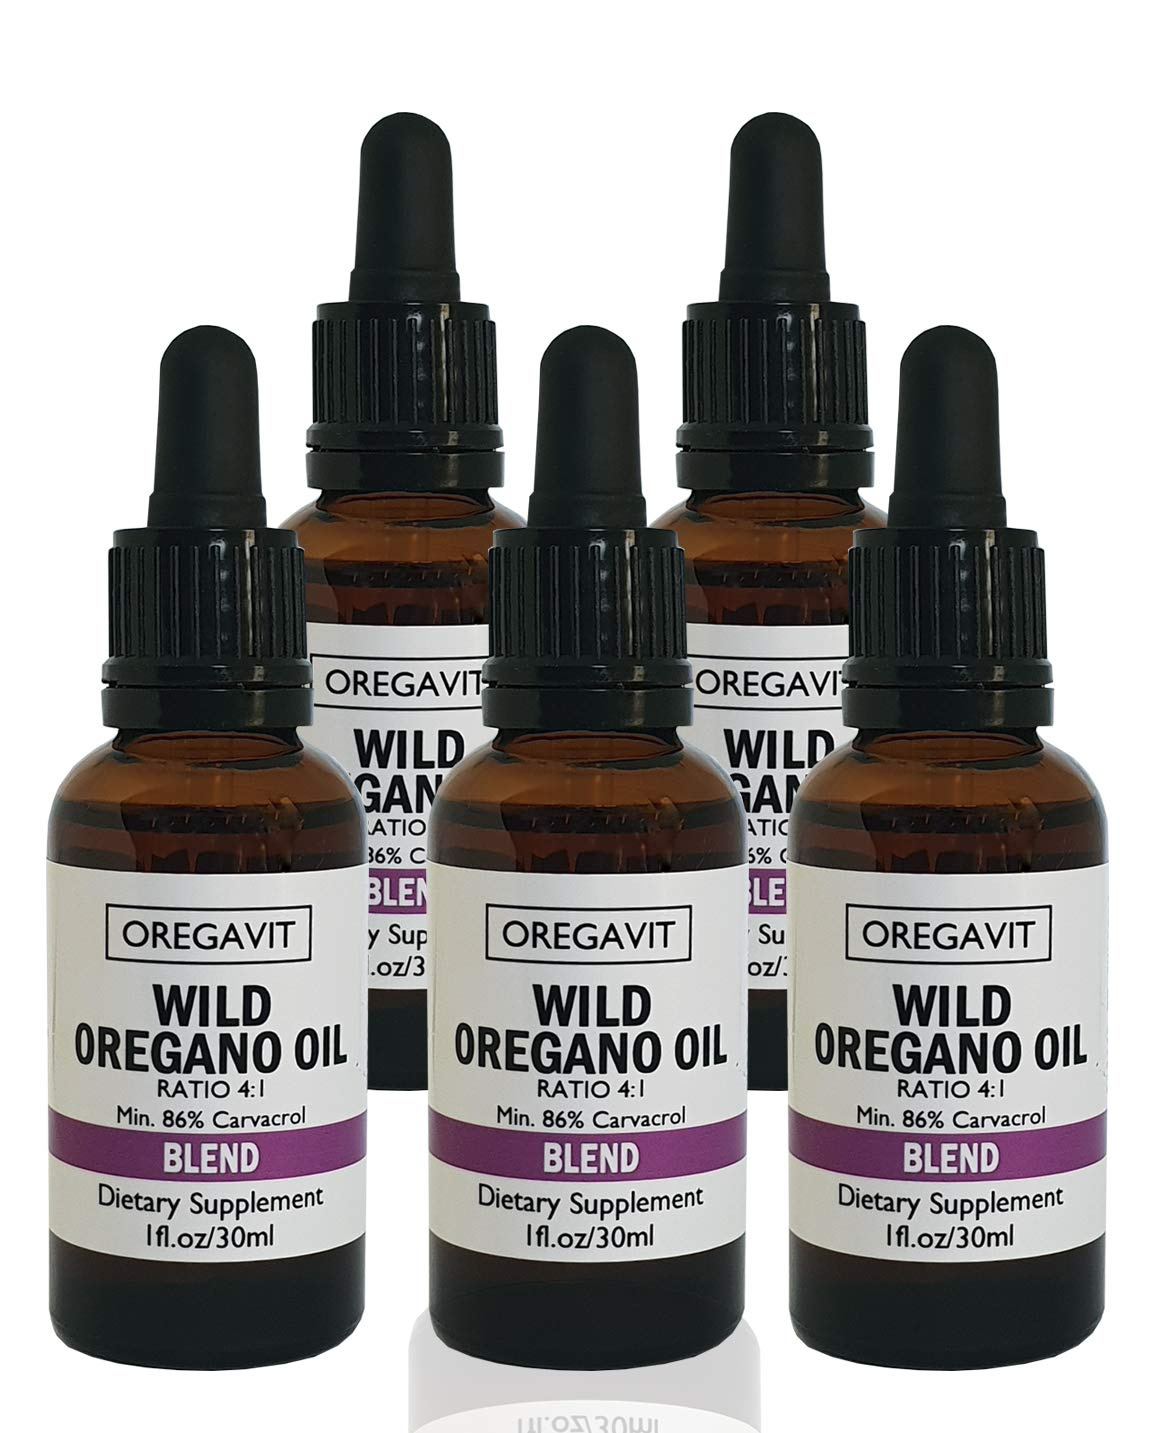 Wild Oil of Oregano Blend Extra Strength 86% Carvacrol * For Digestive, Immune Support & Respiratory Health (5)